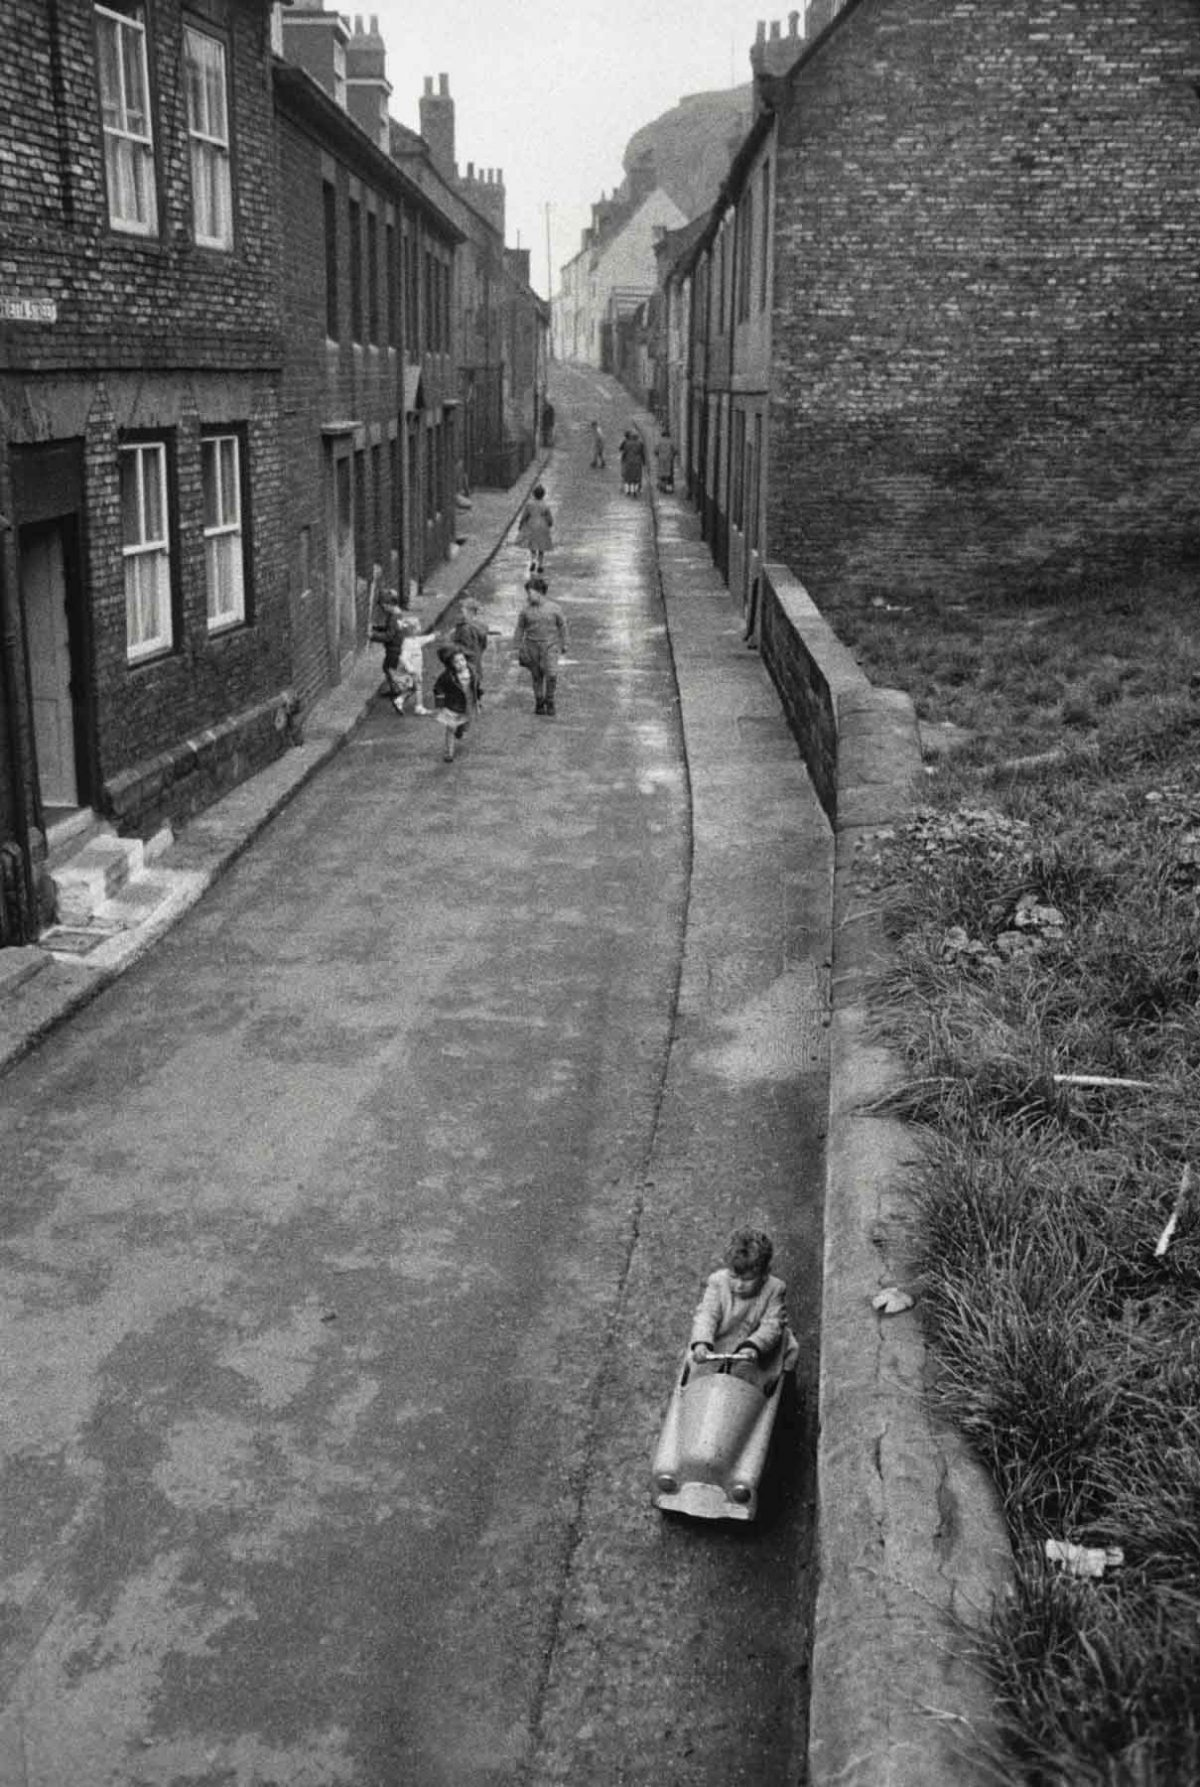 Child Riding in Toy Car, England, 1960 Bruce Davidson